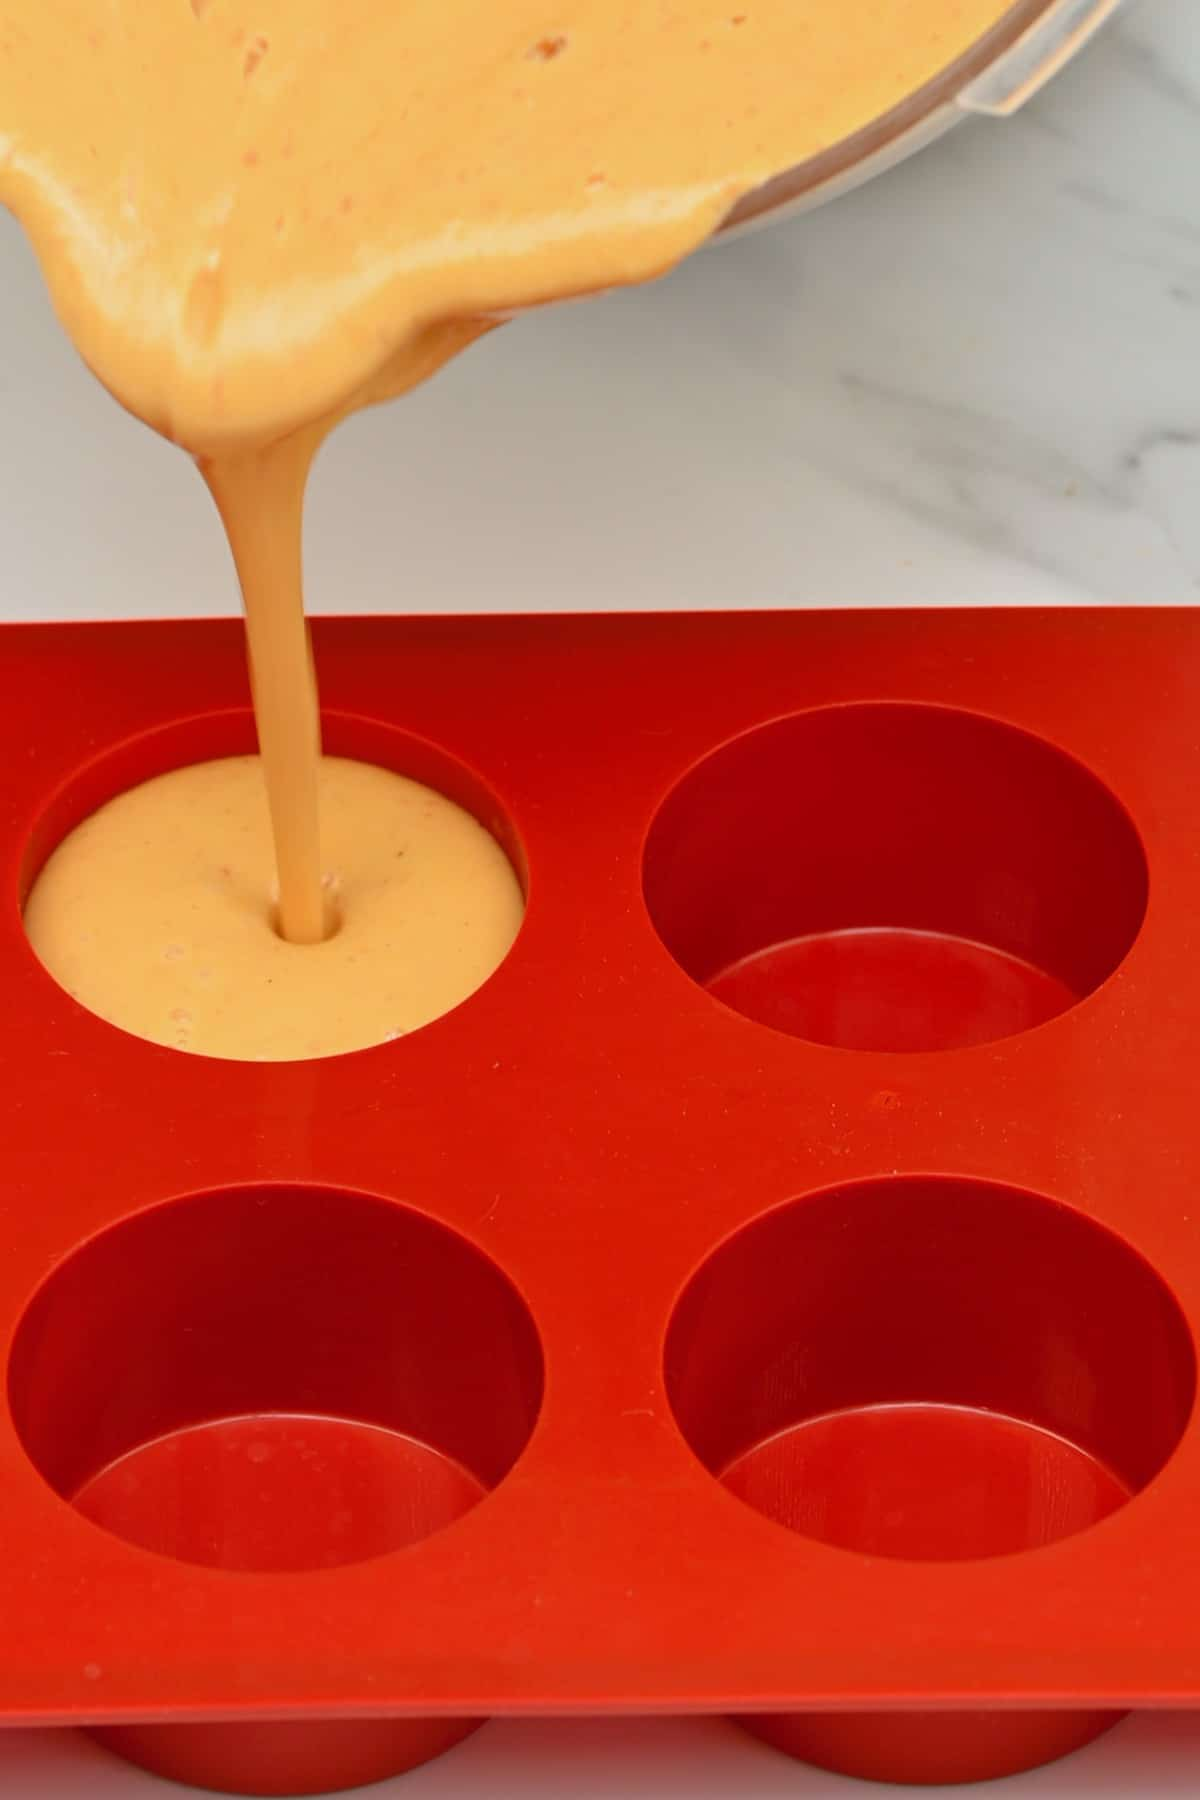 Pouring peach ice cream in an ice cube tray